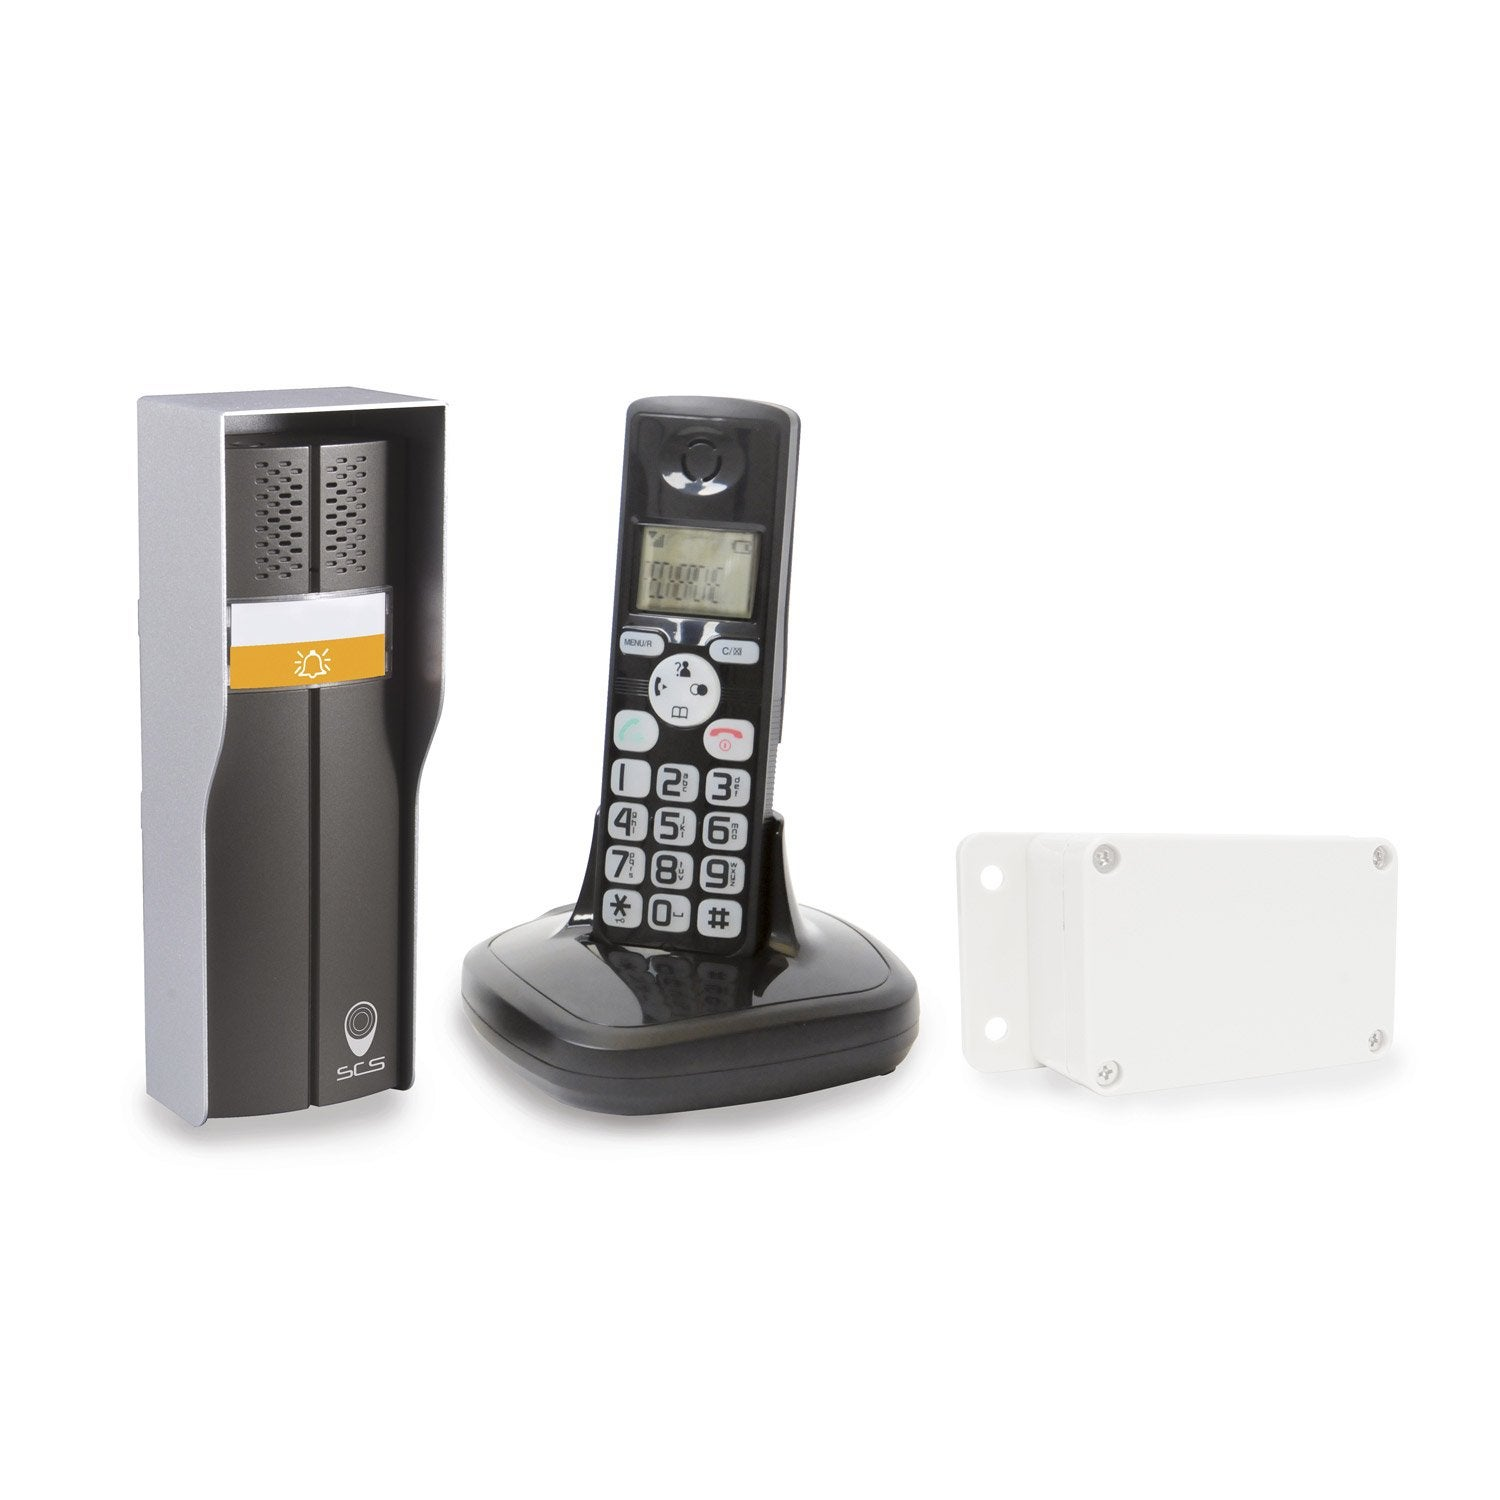 interphone sans fil scs sentinel et t l phone duophone 150 leroy merlin. Black Bedroom Furniture Sets. Home Design Ideas